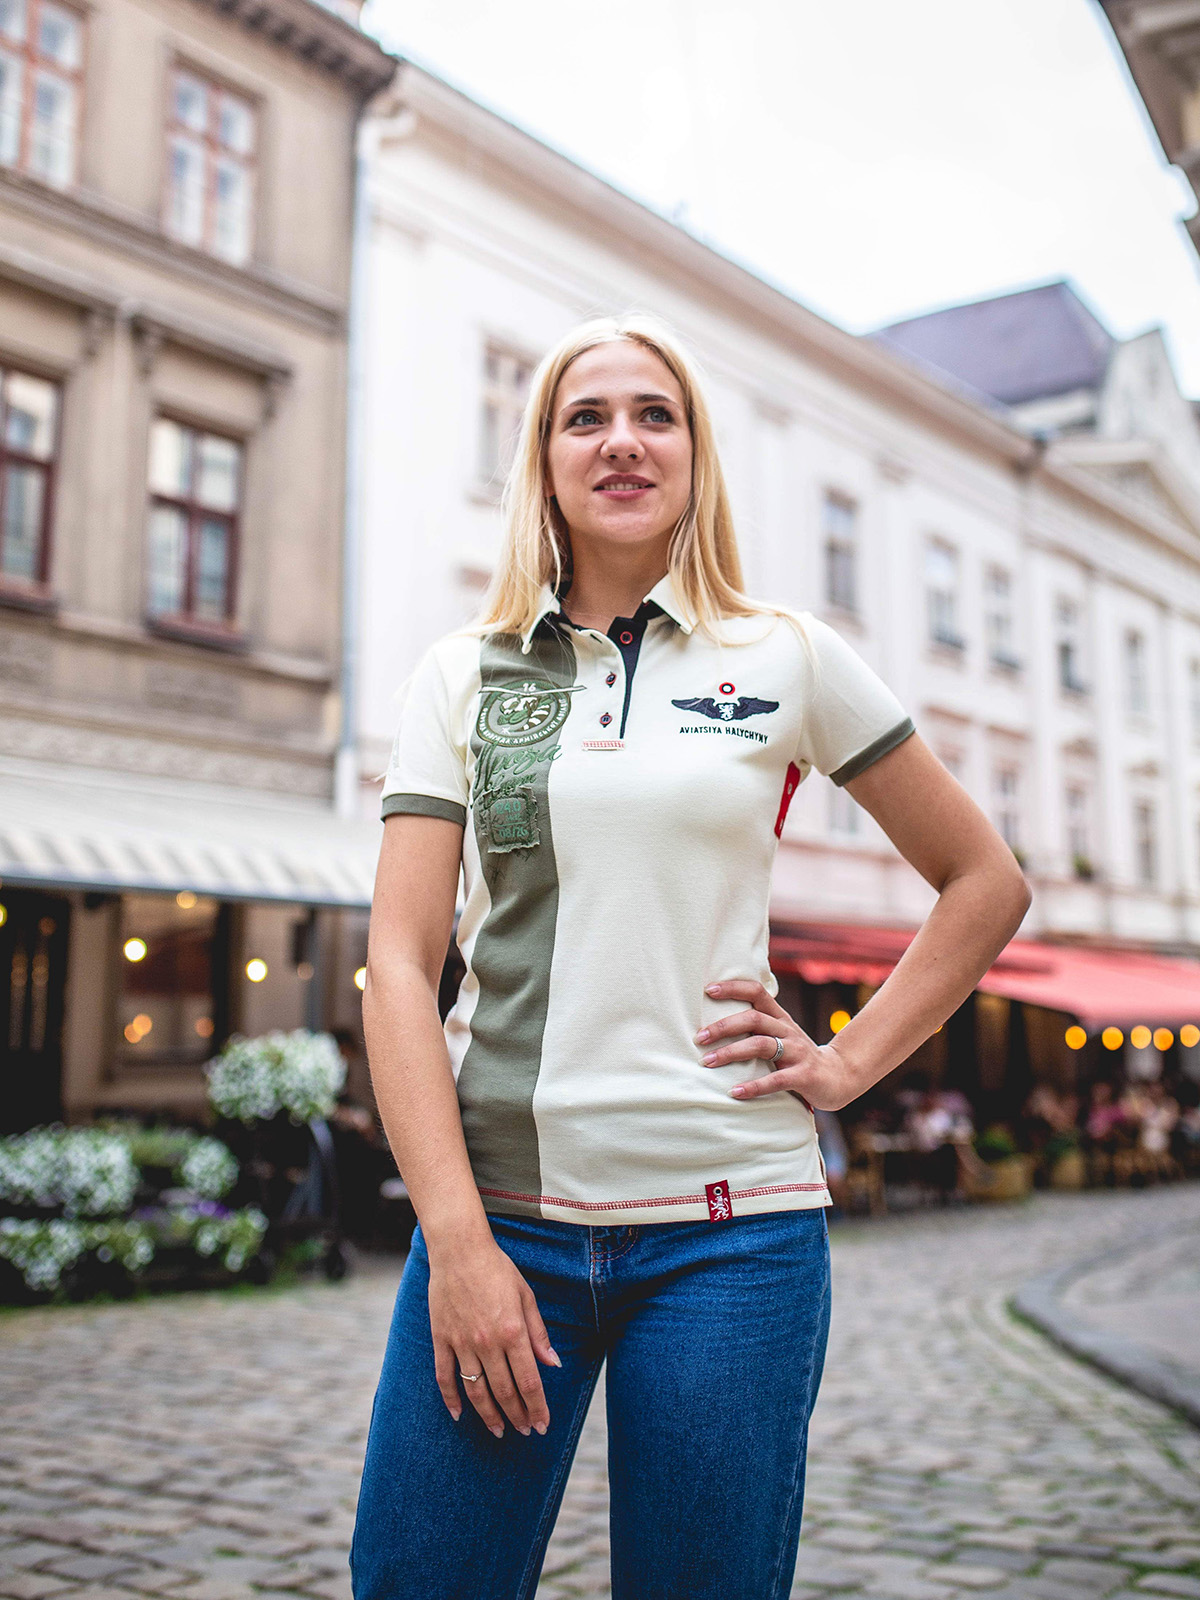 Women's Polo Shirt 16 Brigade. Color ivory.  Height of the model: 163 cm.